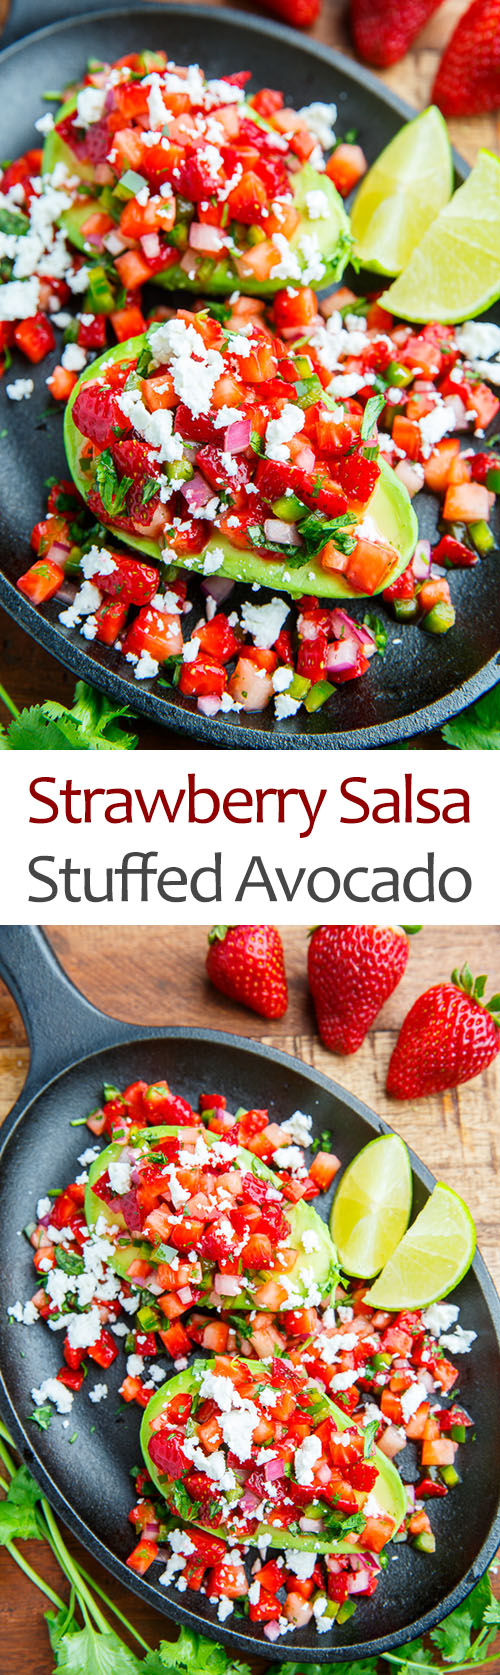 Strawberry And Avocado Salsa Recipe — Dishmaps